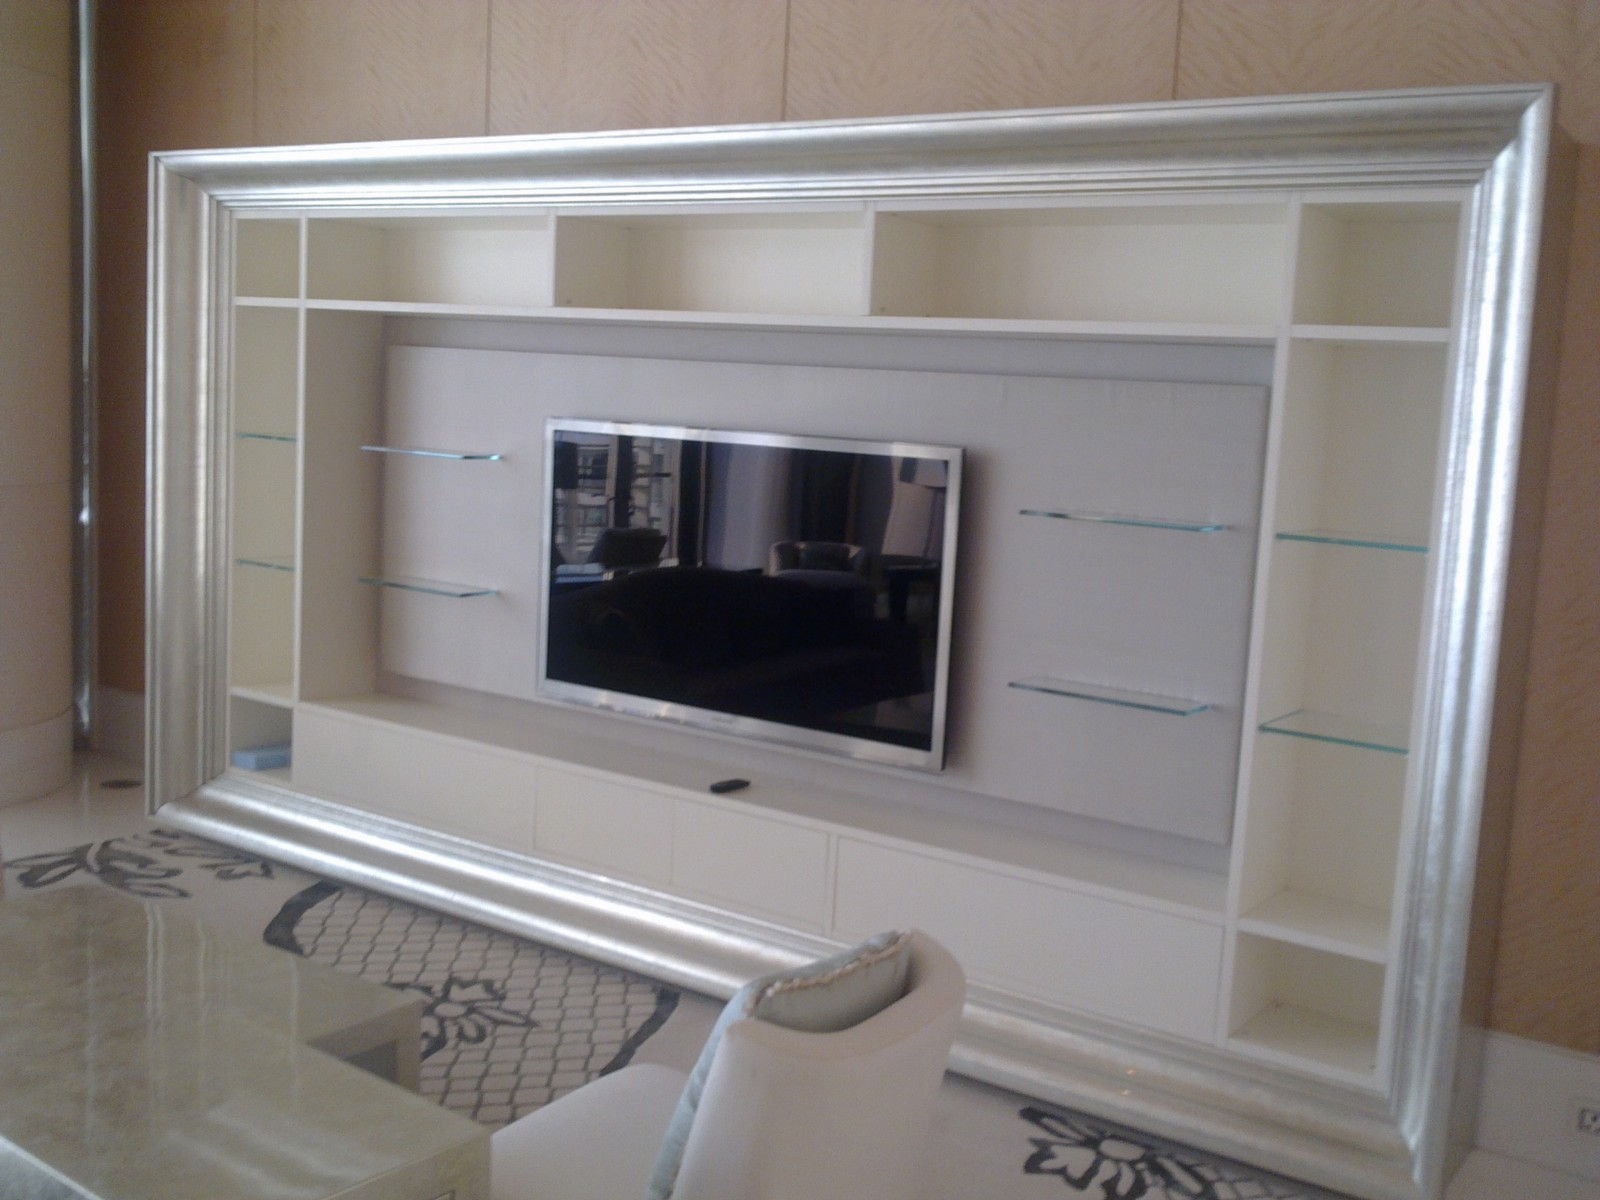 Mukesh Ambani House Antilia Interior Silver Leafing Done On TV Unit By TGLS  / Shehzad Khan.